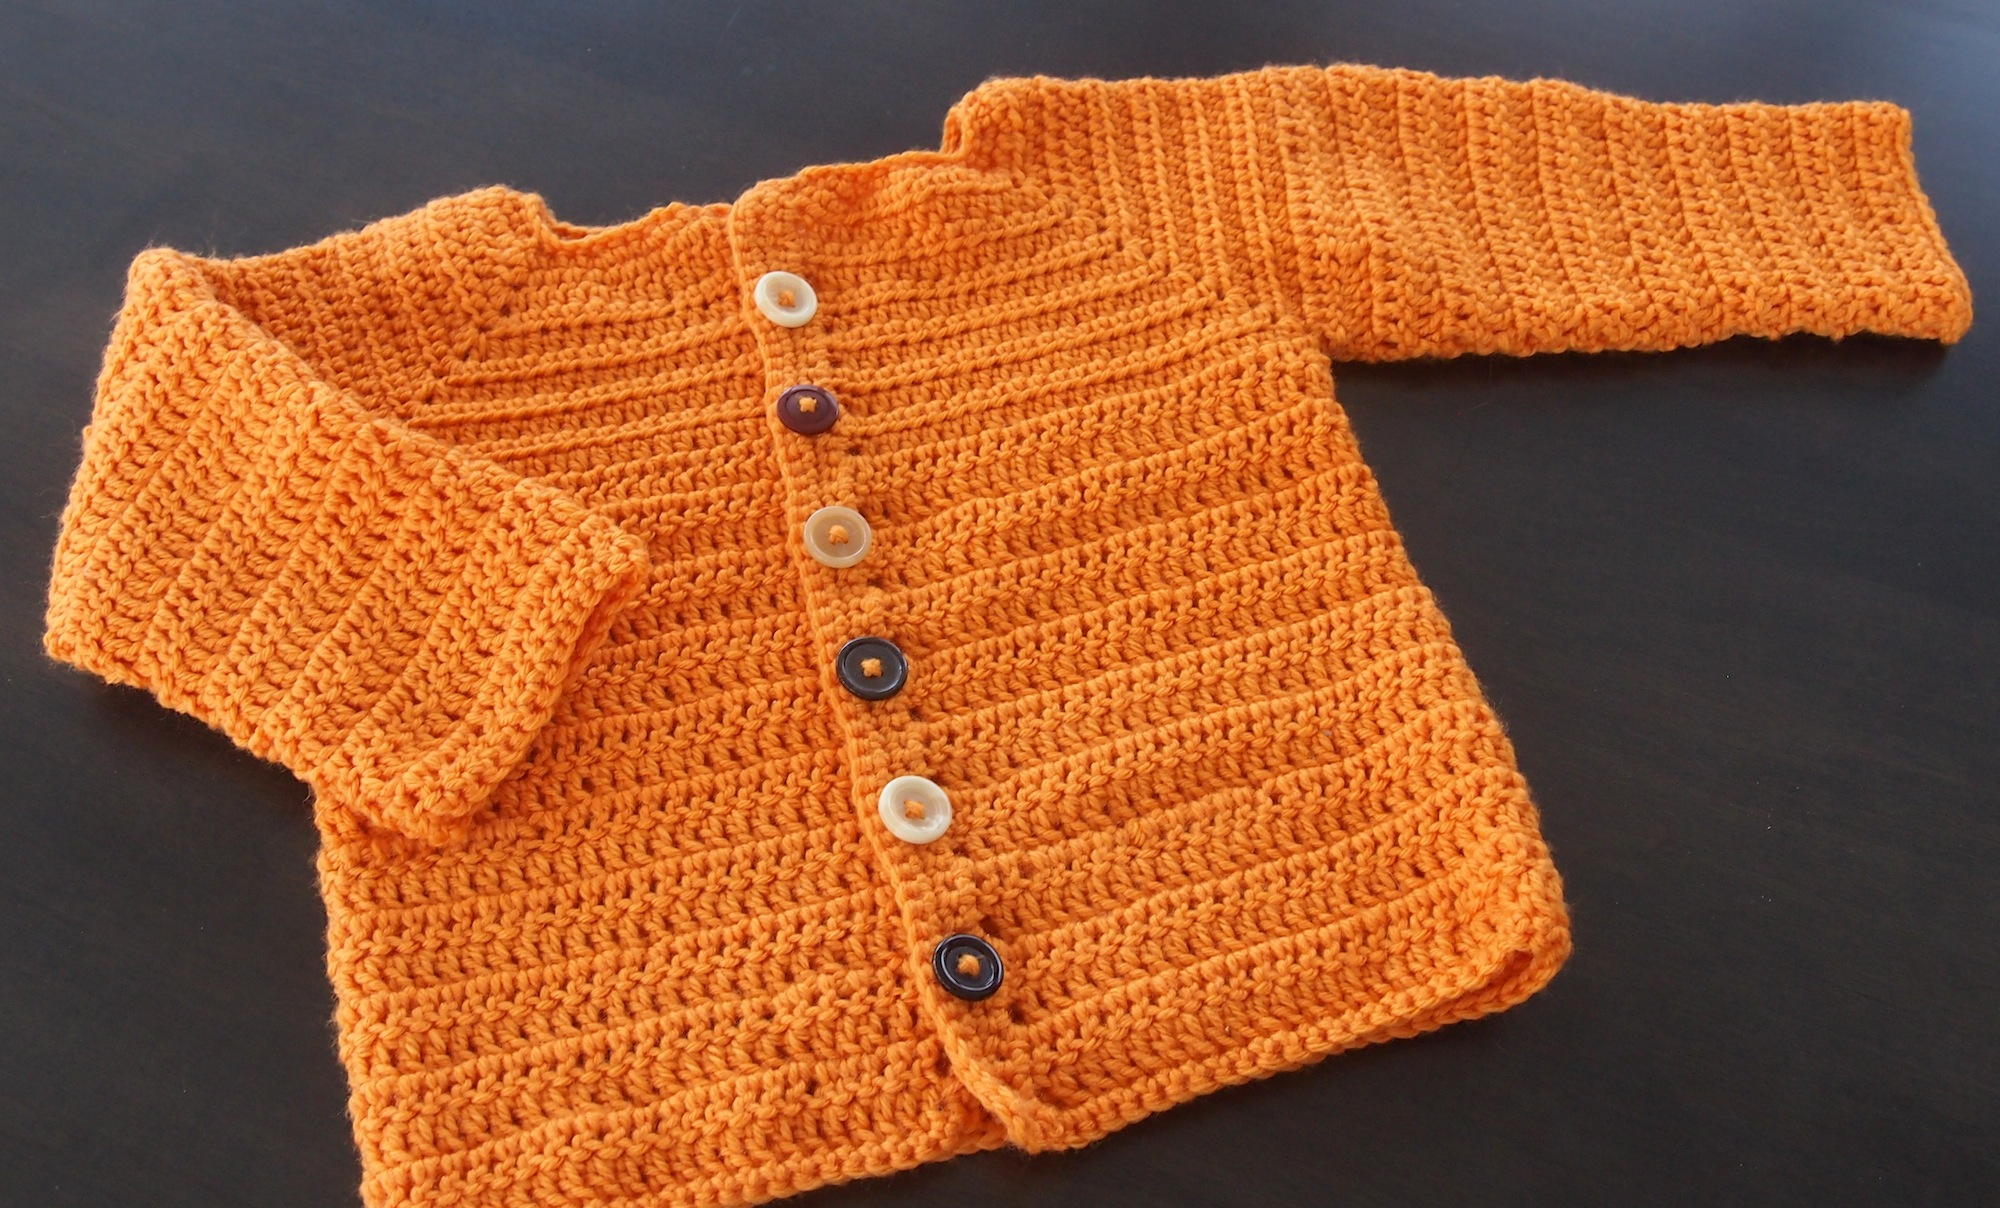 Orange crocheted sweater with white, black, and red buttons.